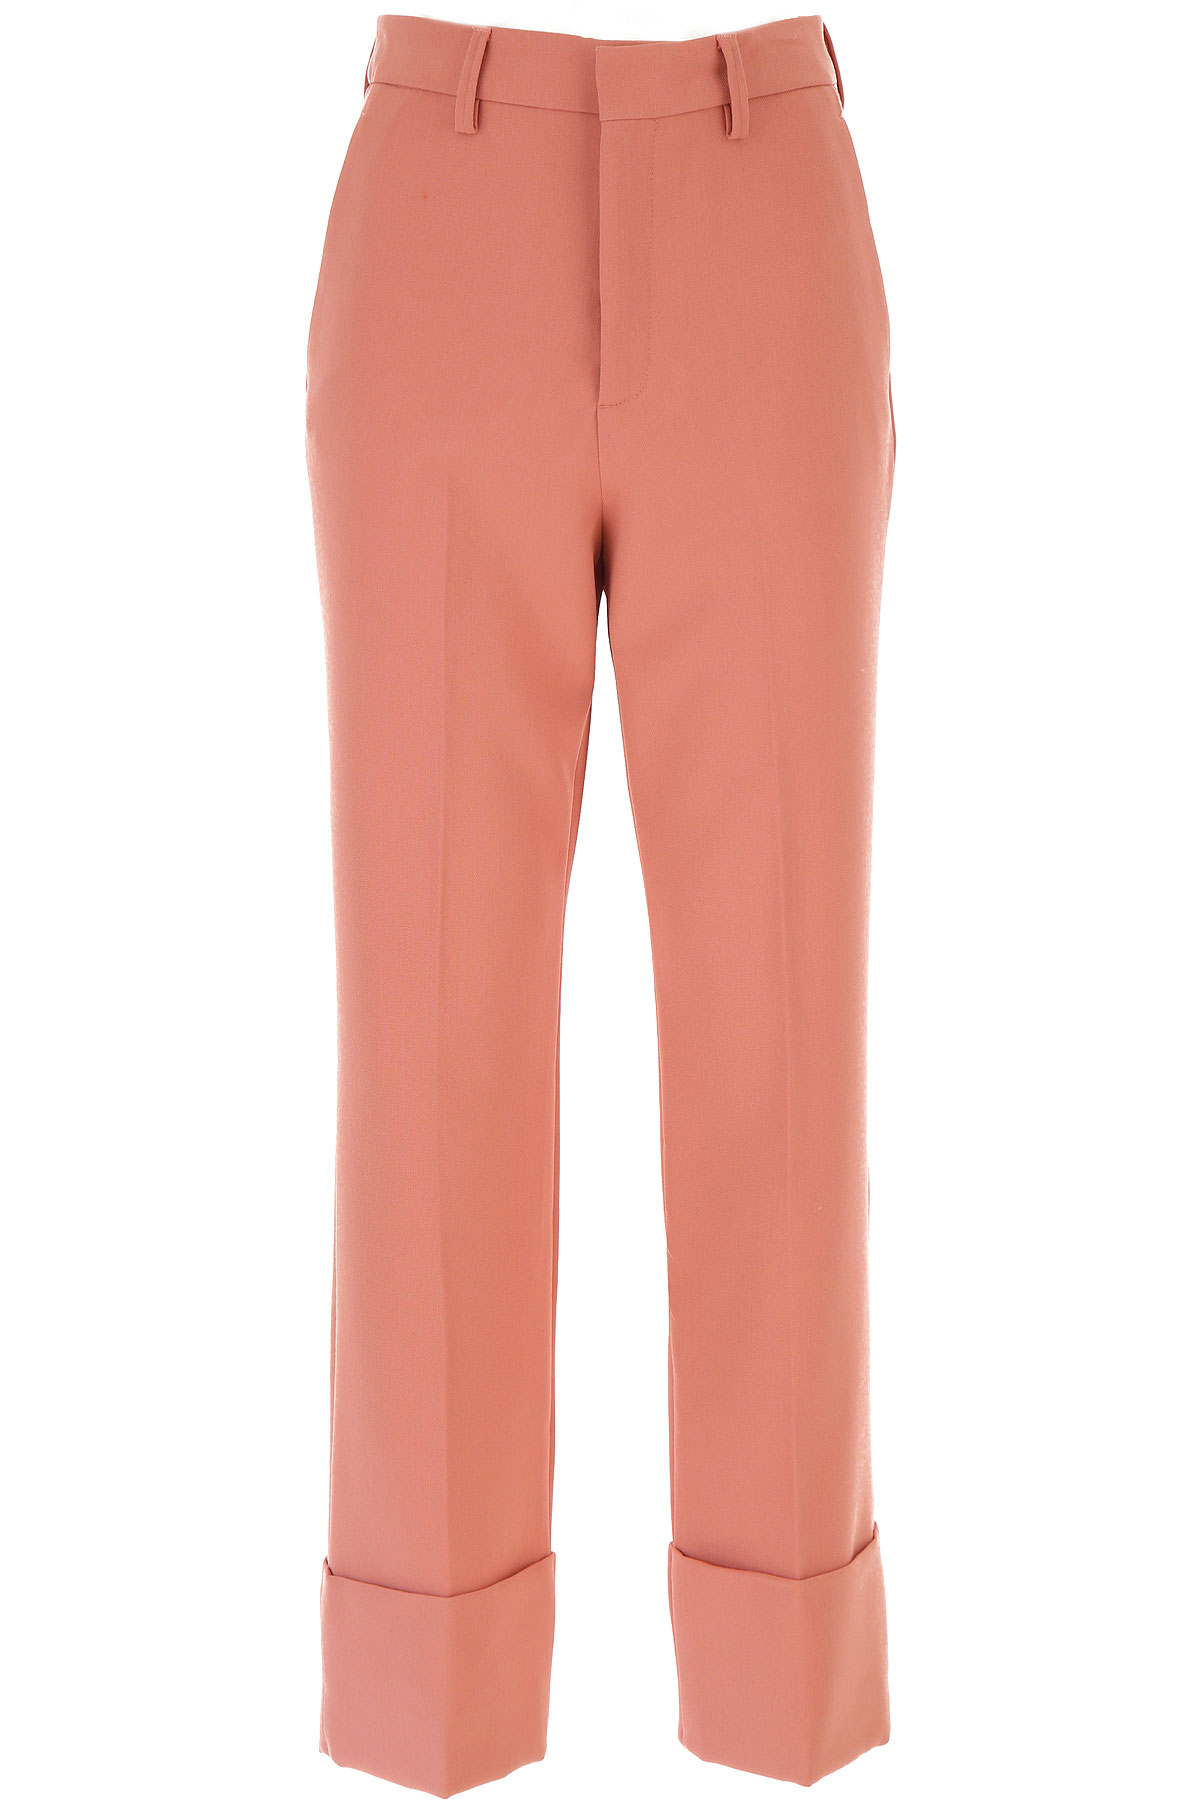 Closed Pants for Women On Sale, Salmon Pink, polyester, 2019, 26 27 28